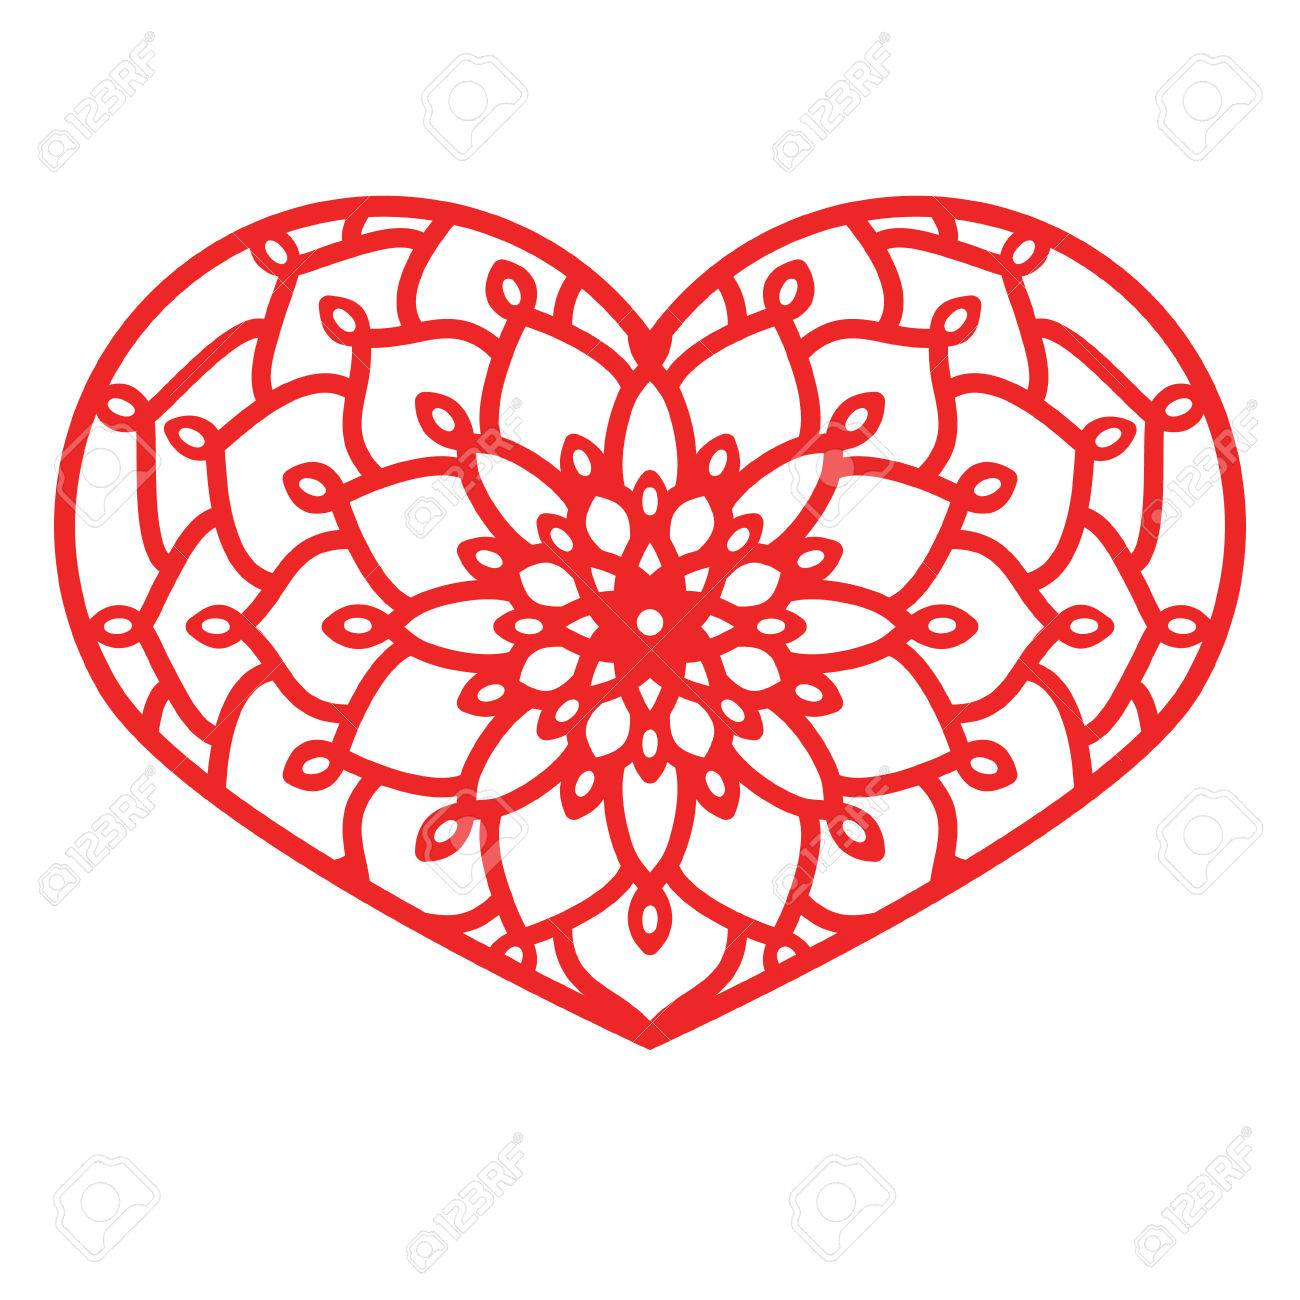 Heart templates free printable heart patterns 25 unique heart template for heart elioleracom 71247049 vector stencil lacy heart with carved openwork pattern template for interior pronofoot35fo Images